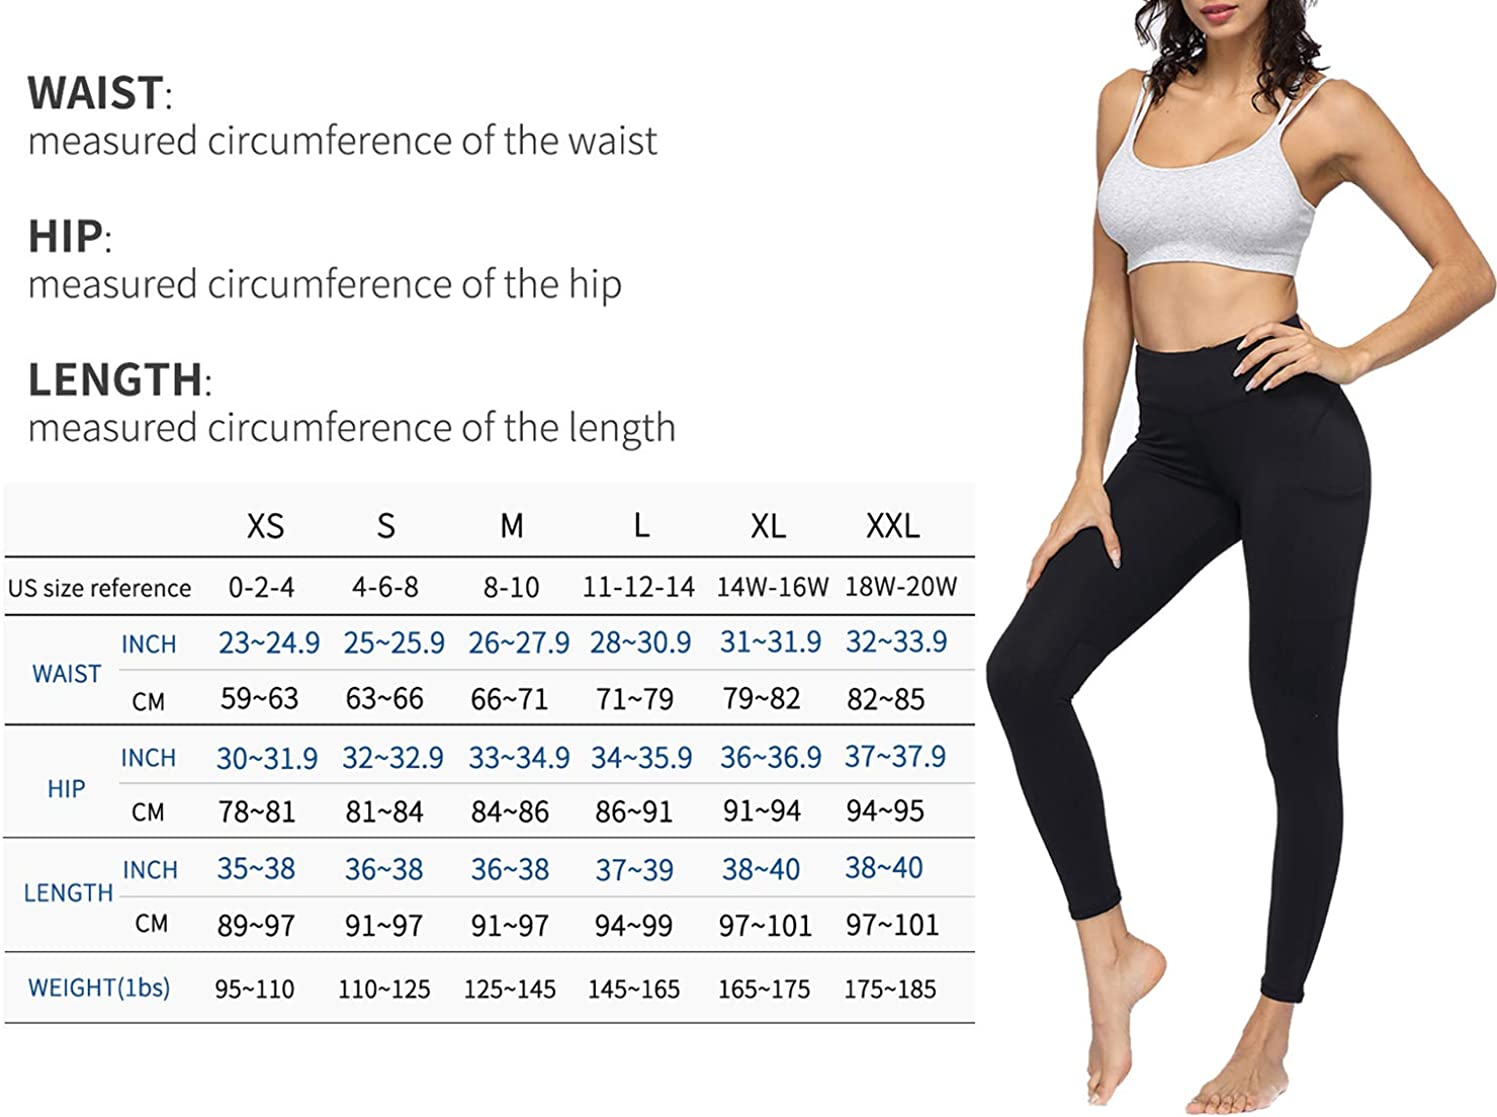 4 Way Stretch Yoga Leggings TQD High Waist Yoga Pants with Pocket Tummy Control Yoga Pants for Women Workout Running